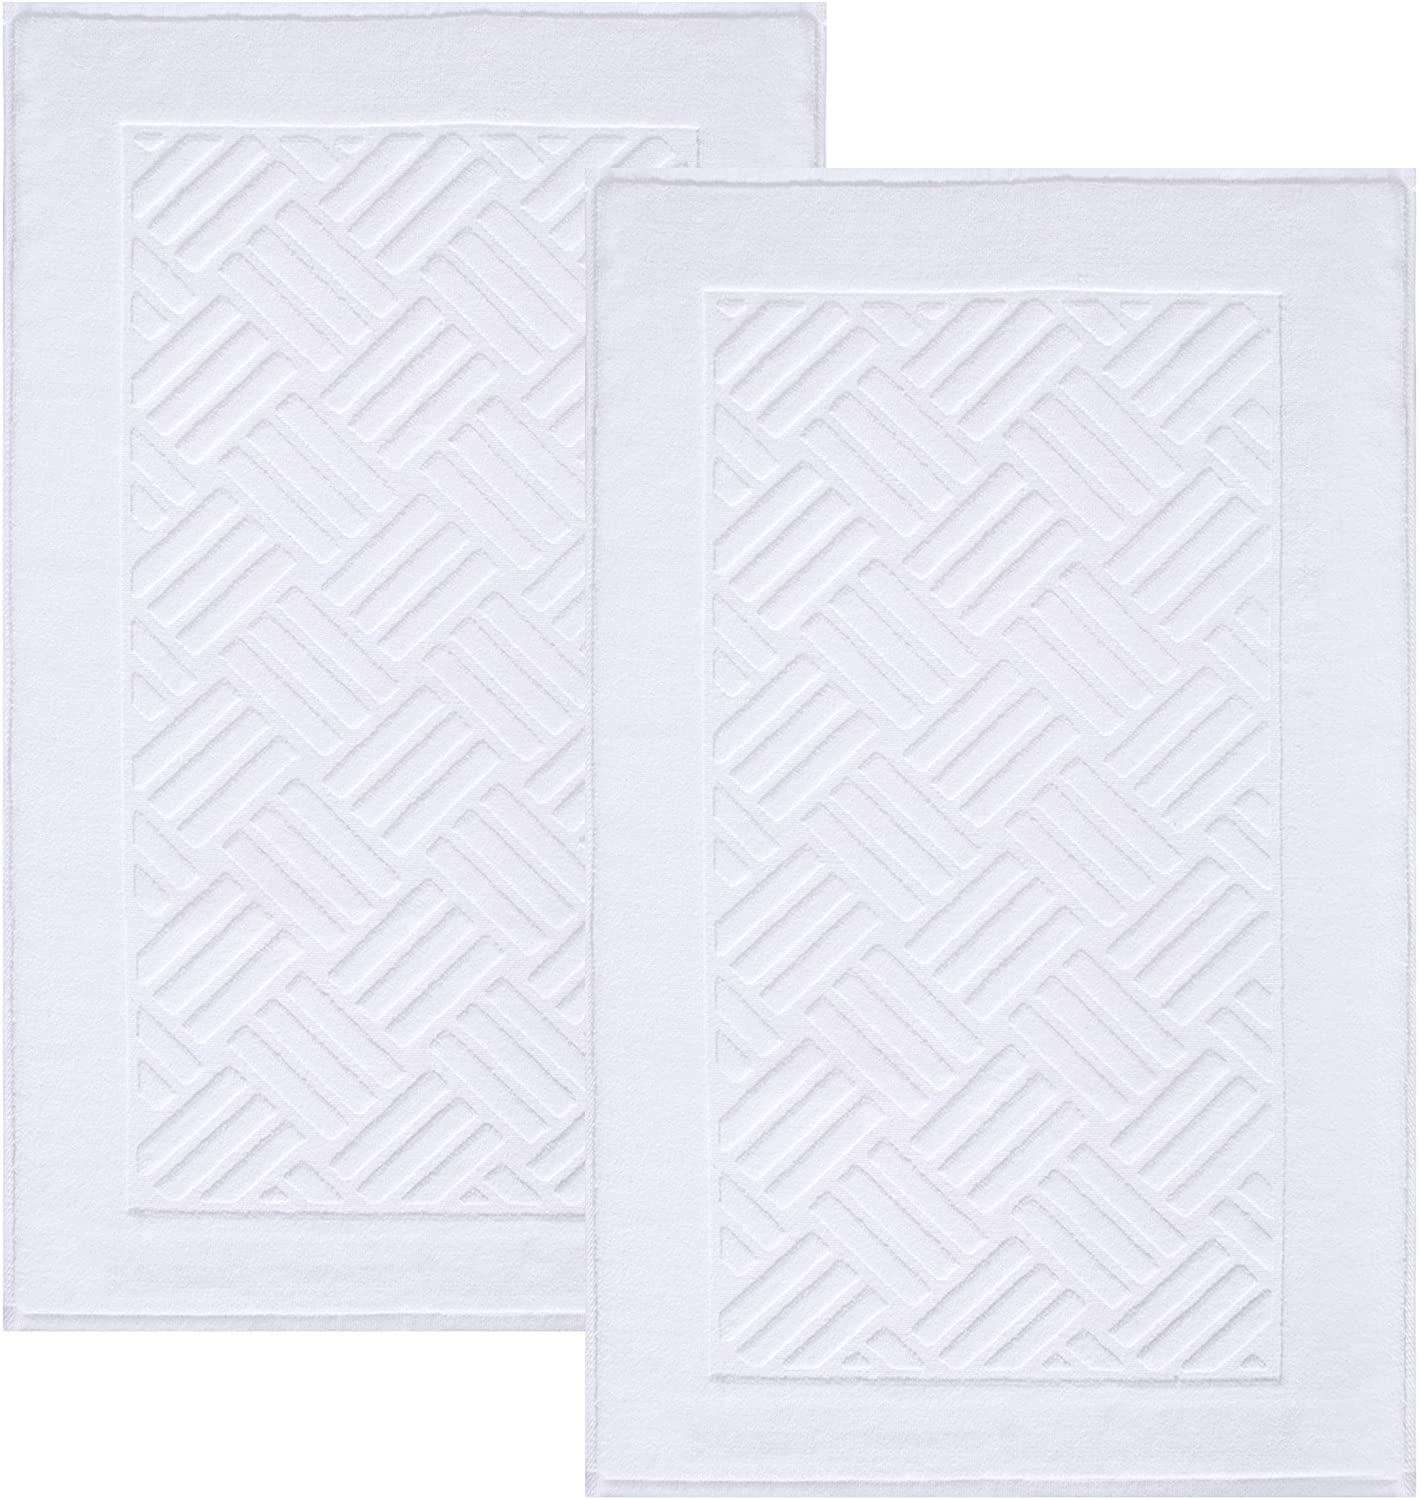 TOMORO Luxury Bath Mat Towels - 2 Pieces Cotton Absorbent Hotel Spa Shower Floor Towel Set for Bathroom with Non-Slip Rug Pad 20 x 32 inches